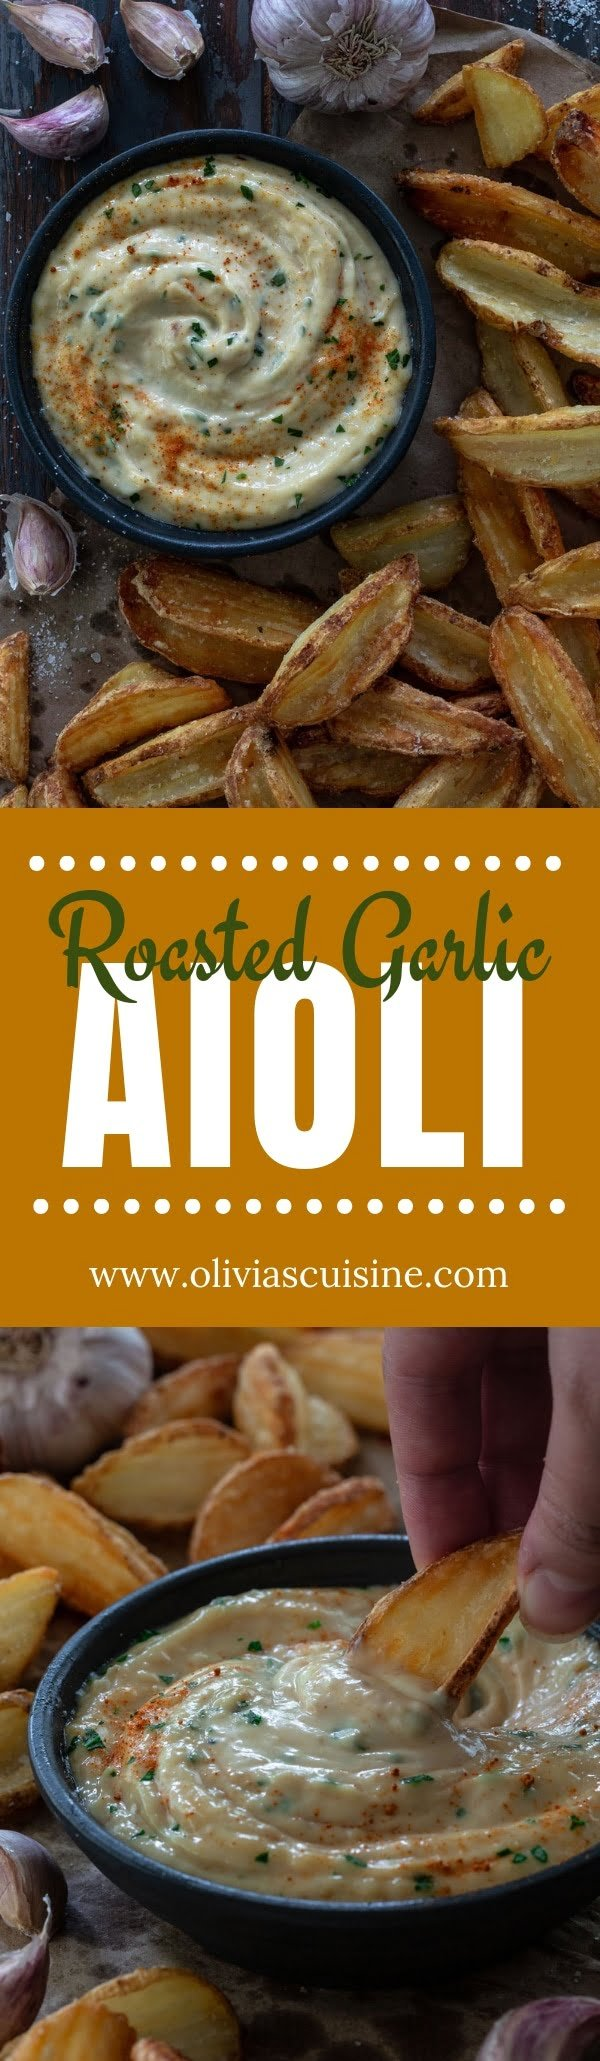 Roasted Garlic Aioli   www.oliviascuisine.com   Hello, garlic lovers, this Roasted Garlic Aioli is for you! Creamy, garlicky and packed with umami flavor. Serve it on burgers, veggies or as a dip for fries! (Recipe and food photography by @oliviascuisine.) #roastedgarlic #garlic #dip